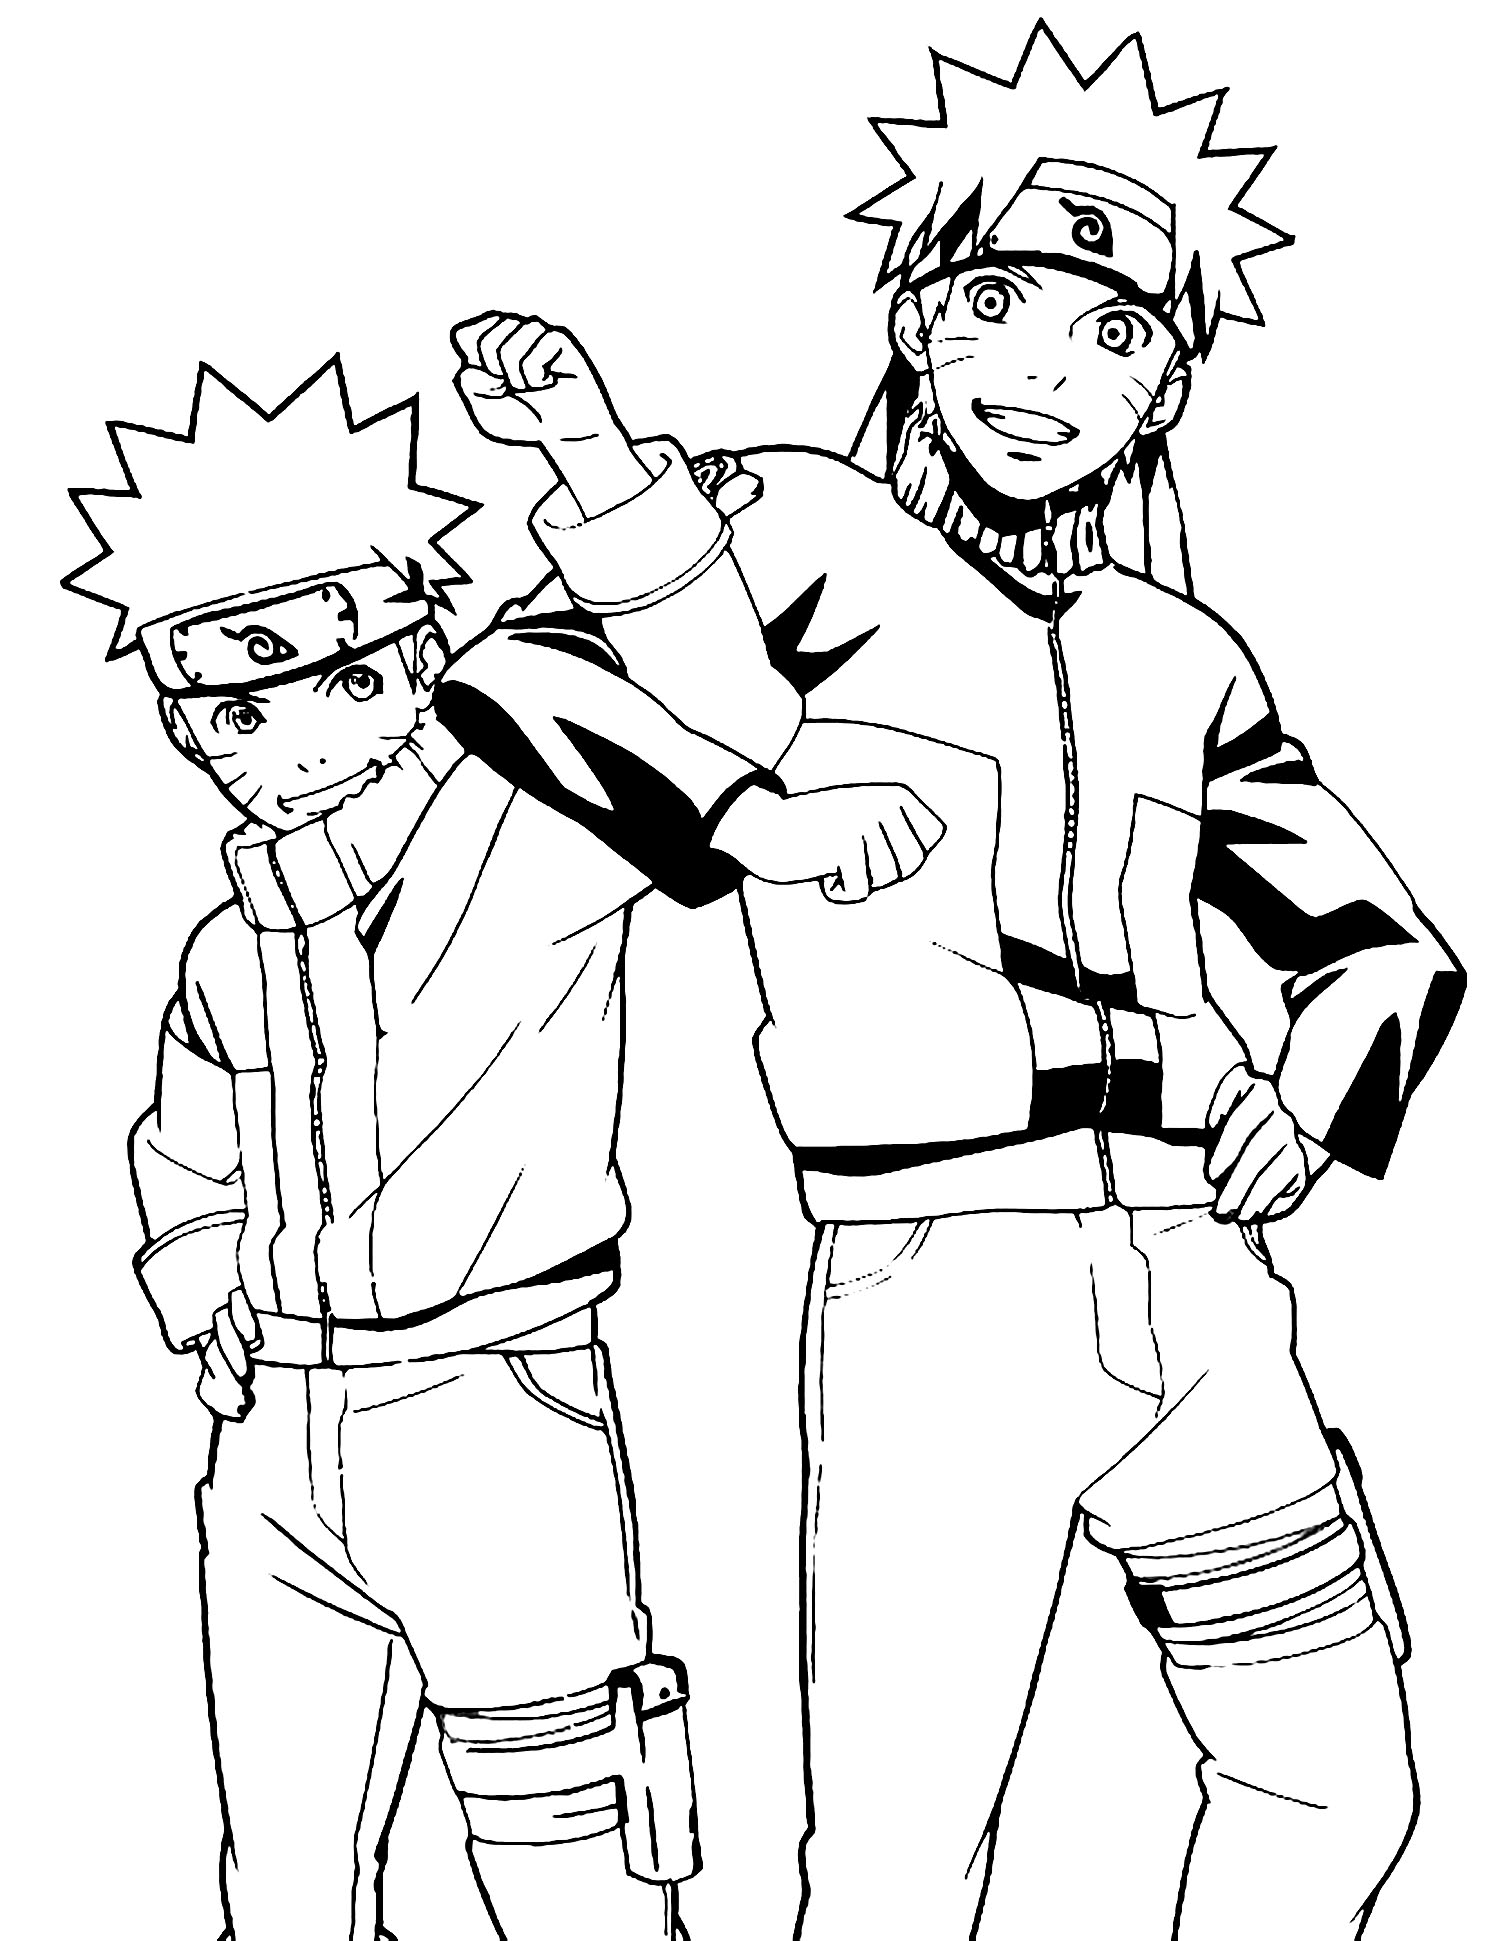 naruto coloring sheets naruto coloring pages naruto sheets coloring